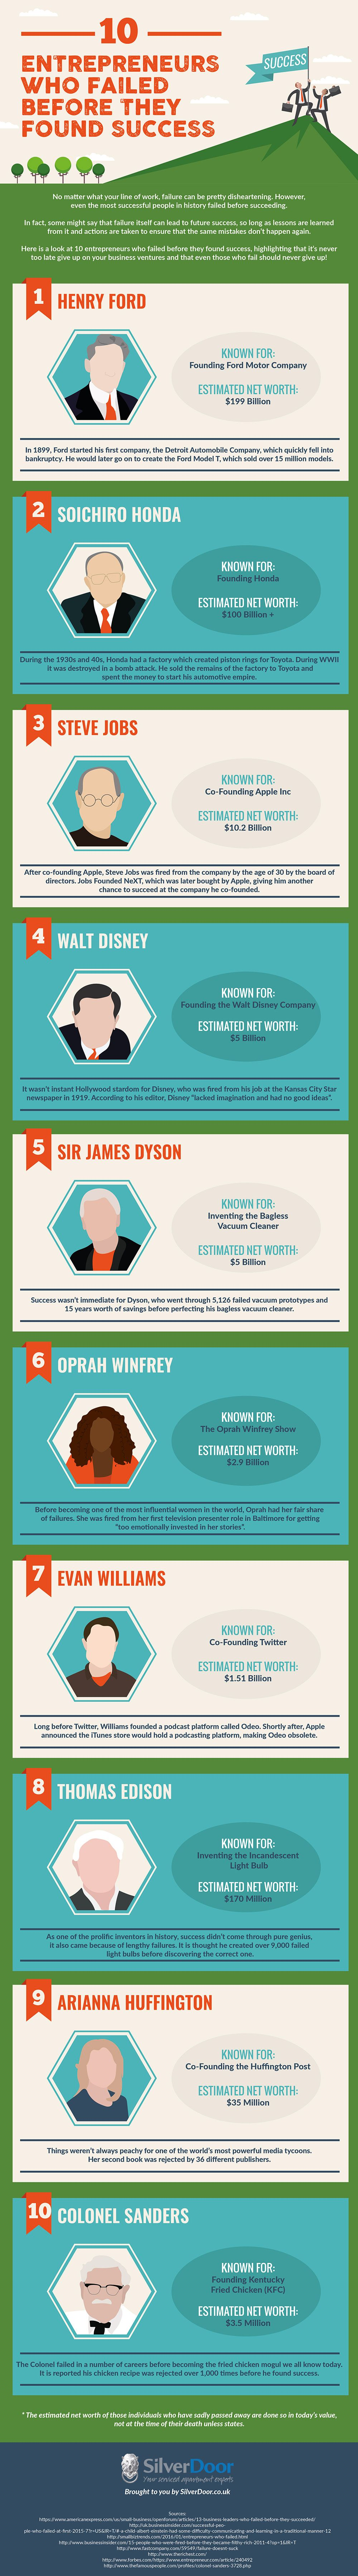 10 Entrepreneurs Who Failed Before They Found Success